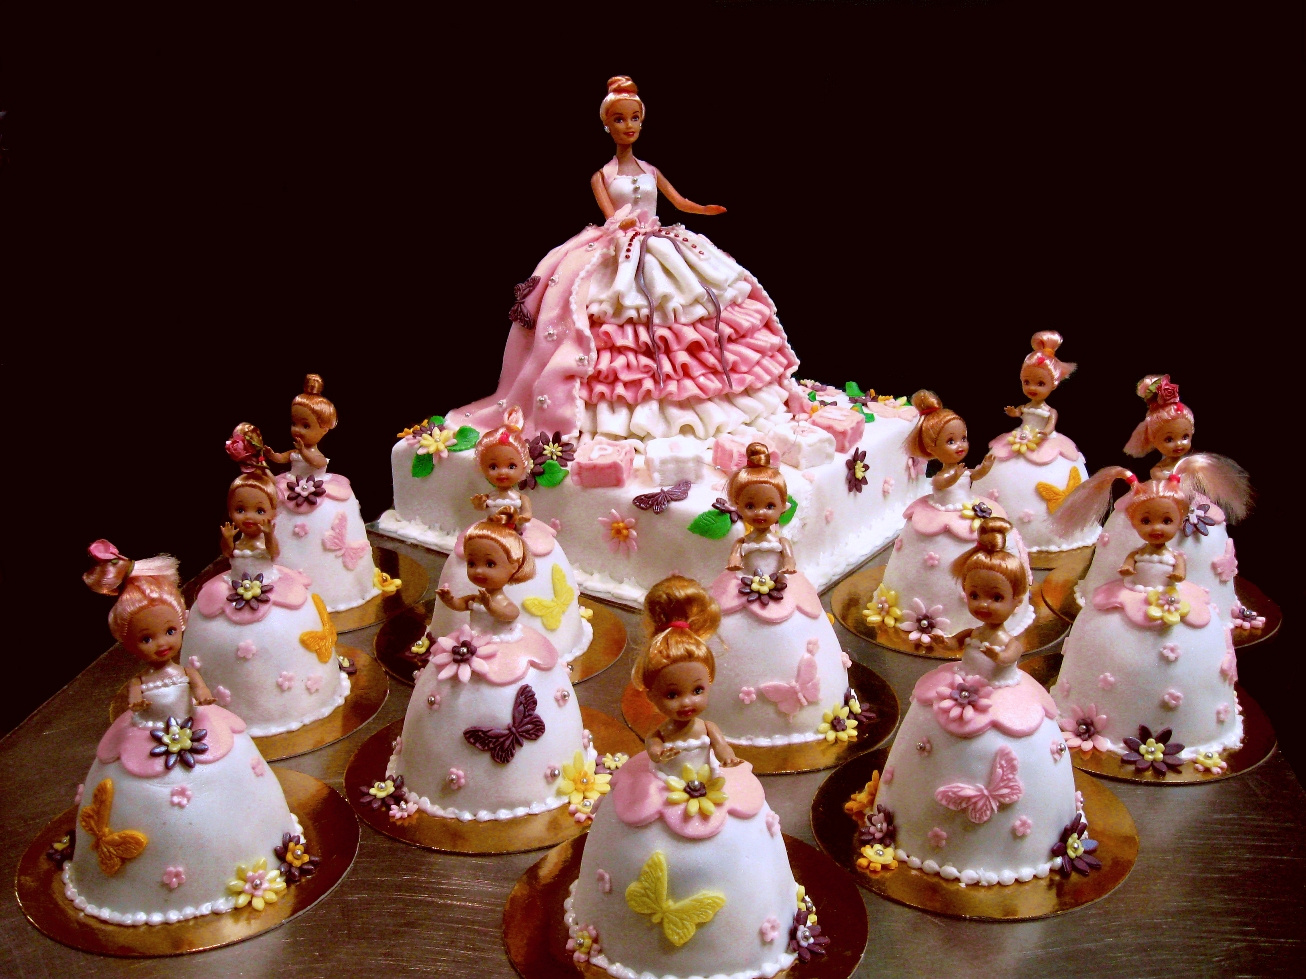 How To Make A Barbie Wedding Cake